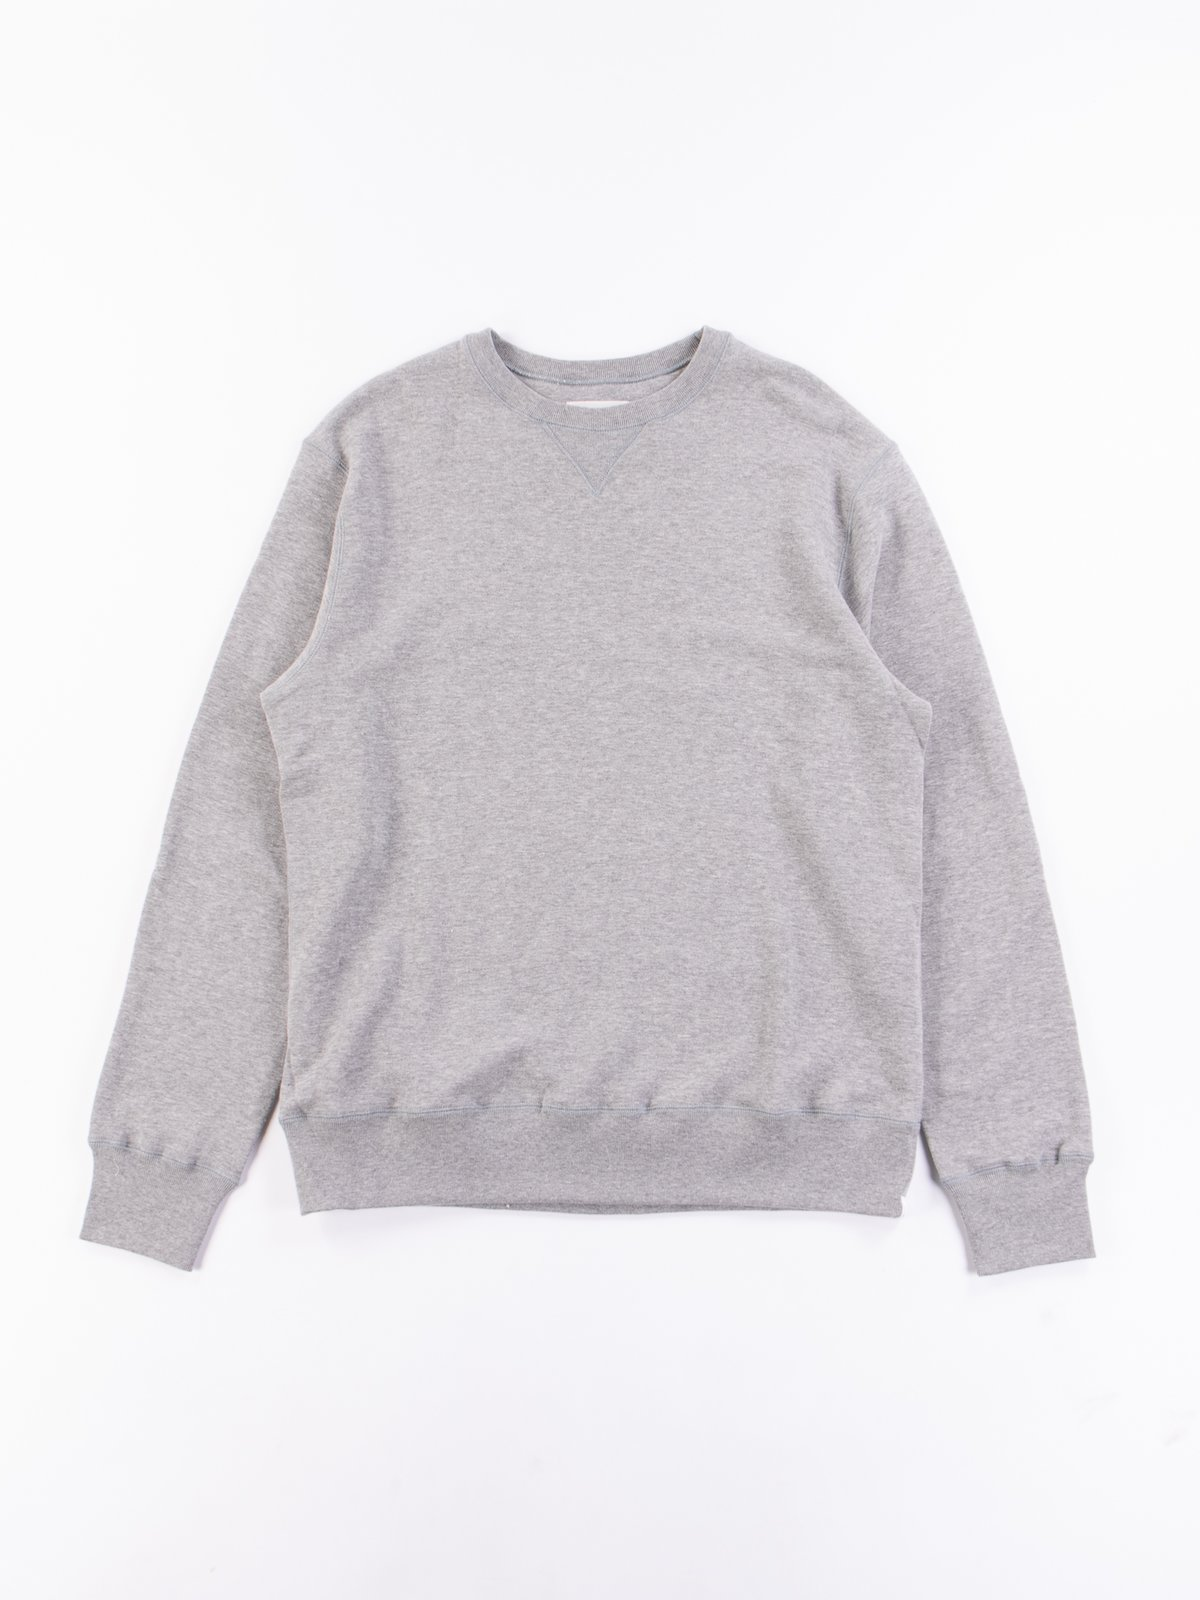 GR7 Pullover Crew - Image 1